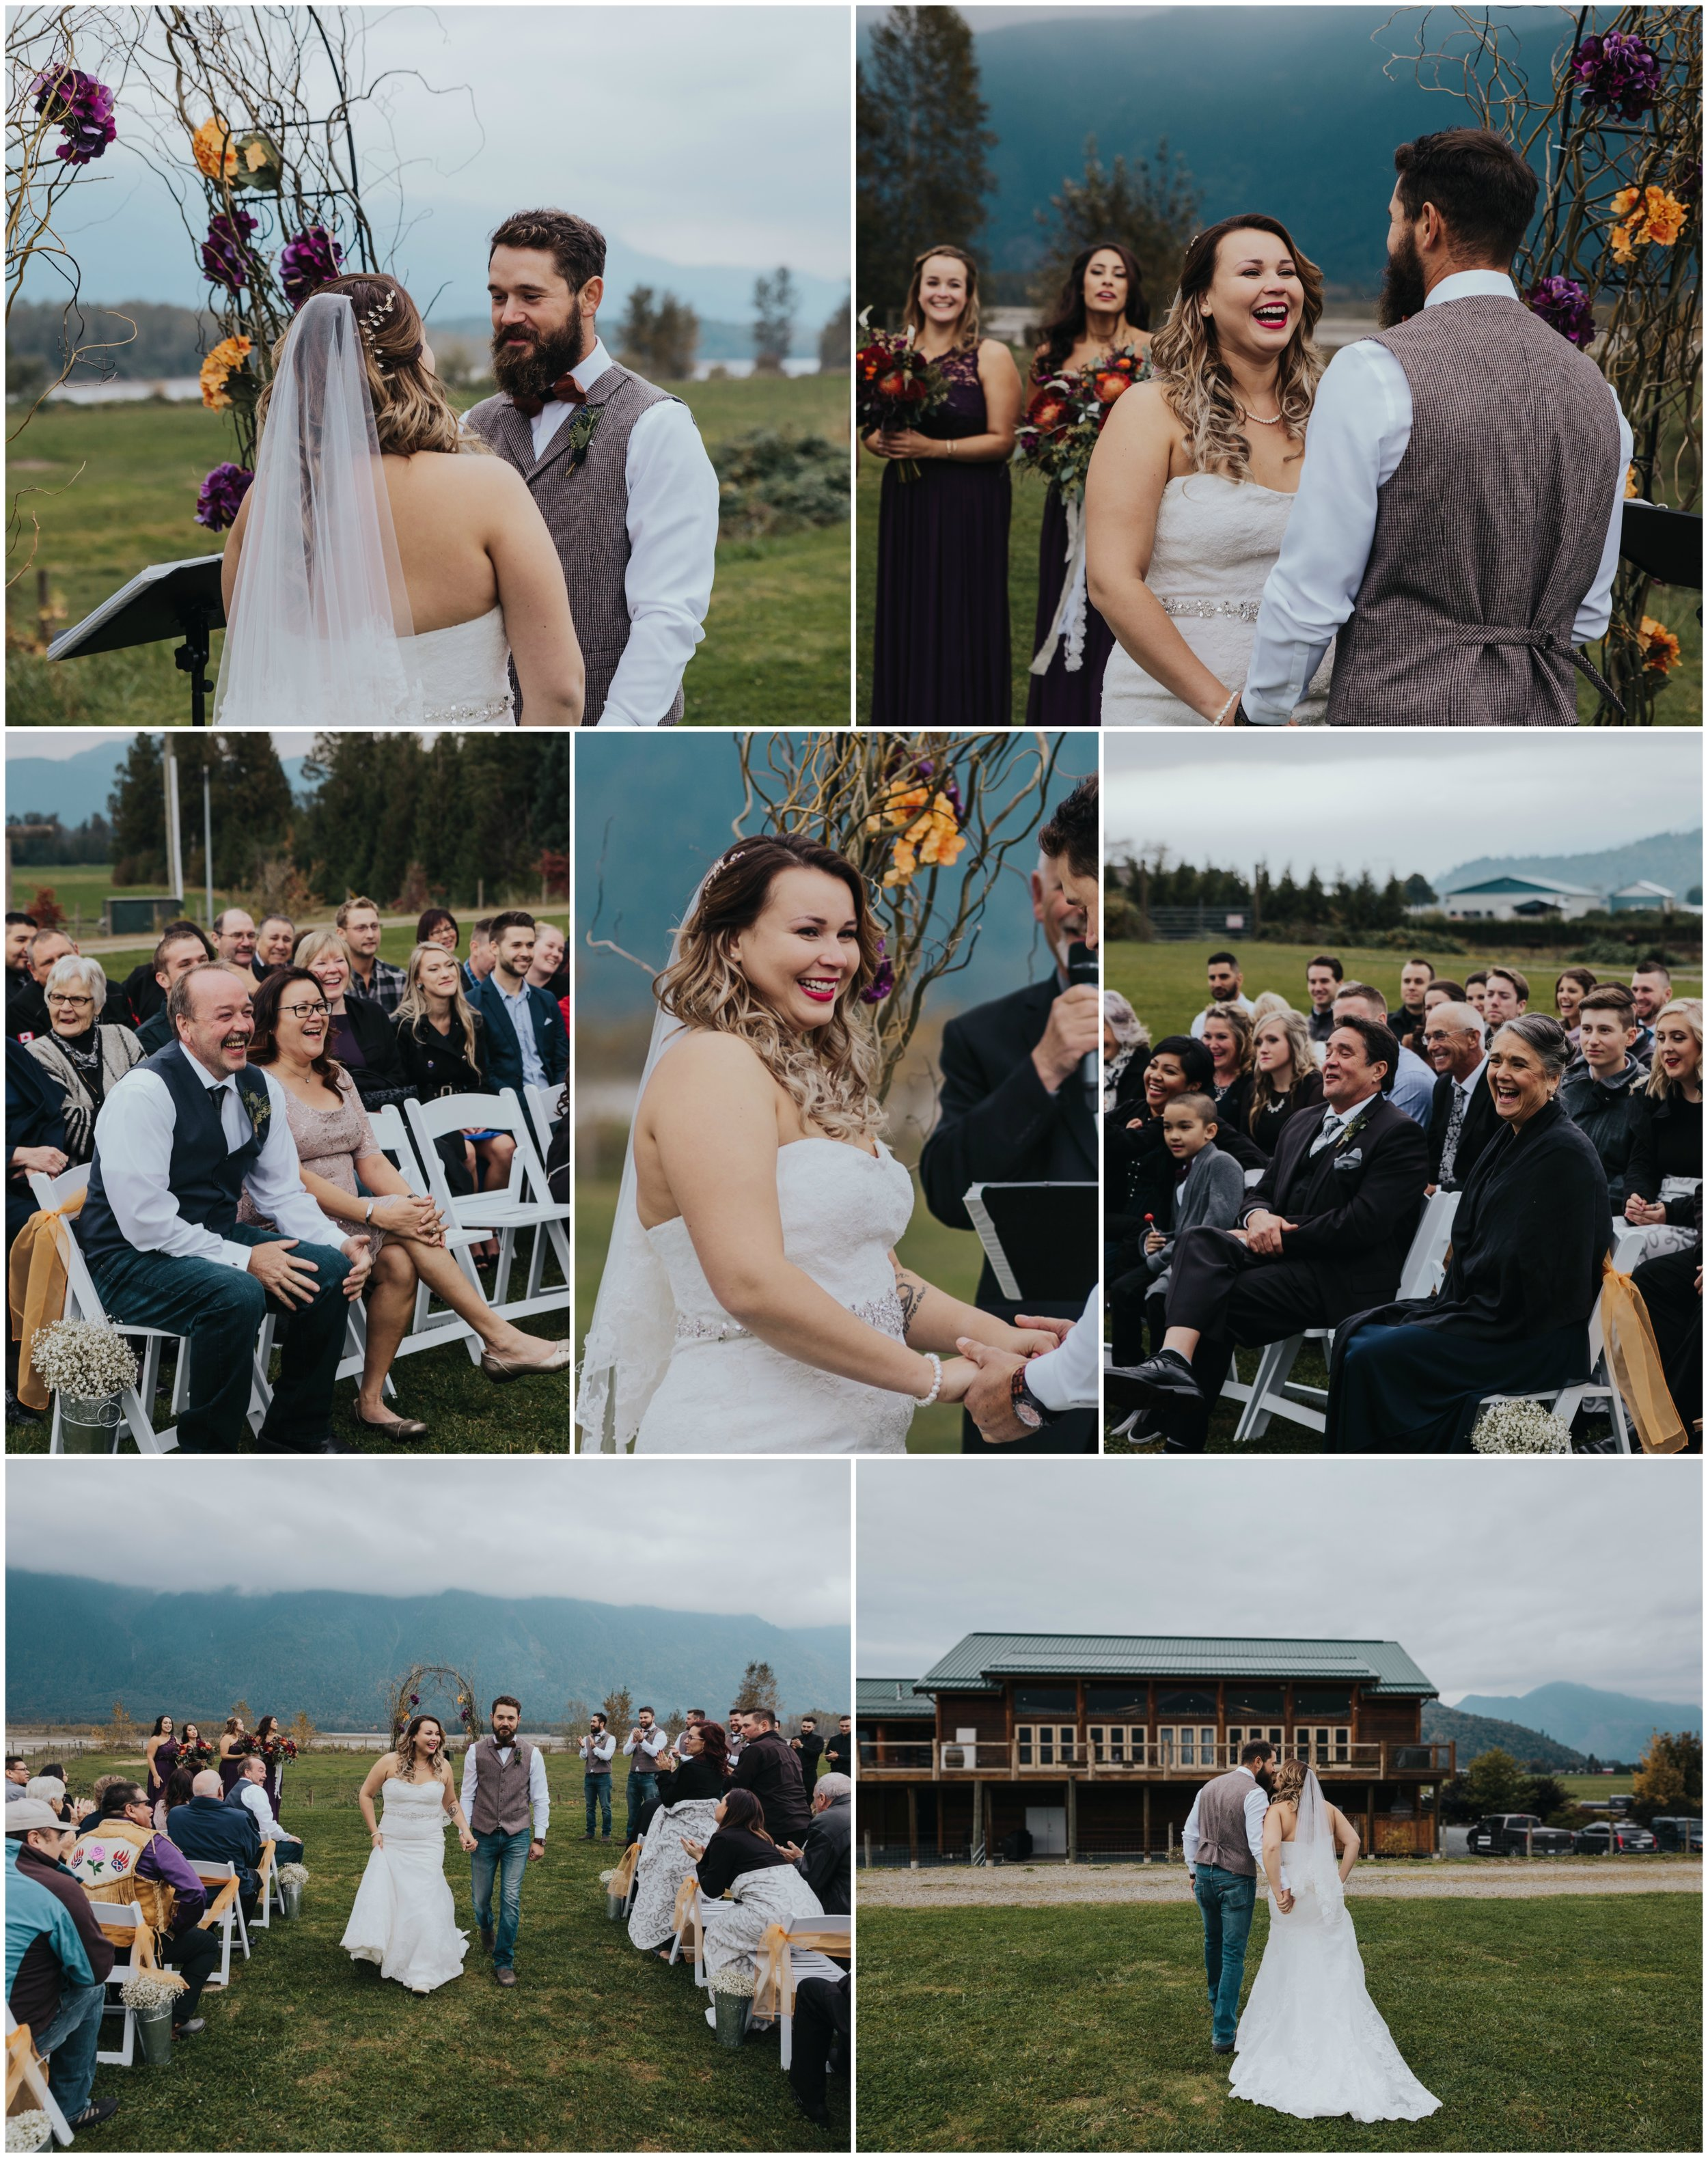 Fraser River Lodge, Rustic Pine Wedding, Red, Purple, Plaid 9.jpg